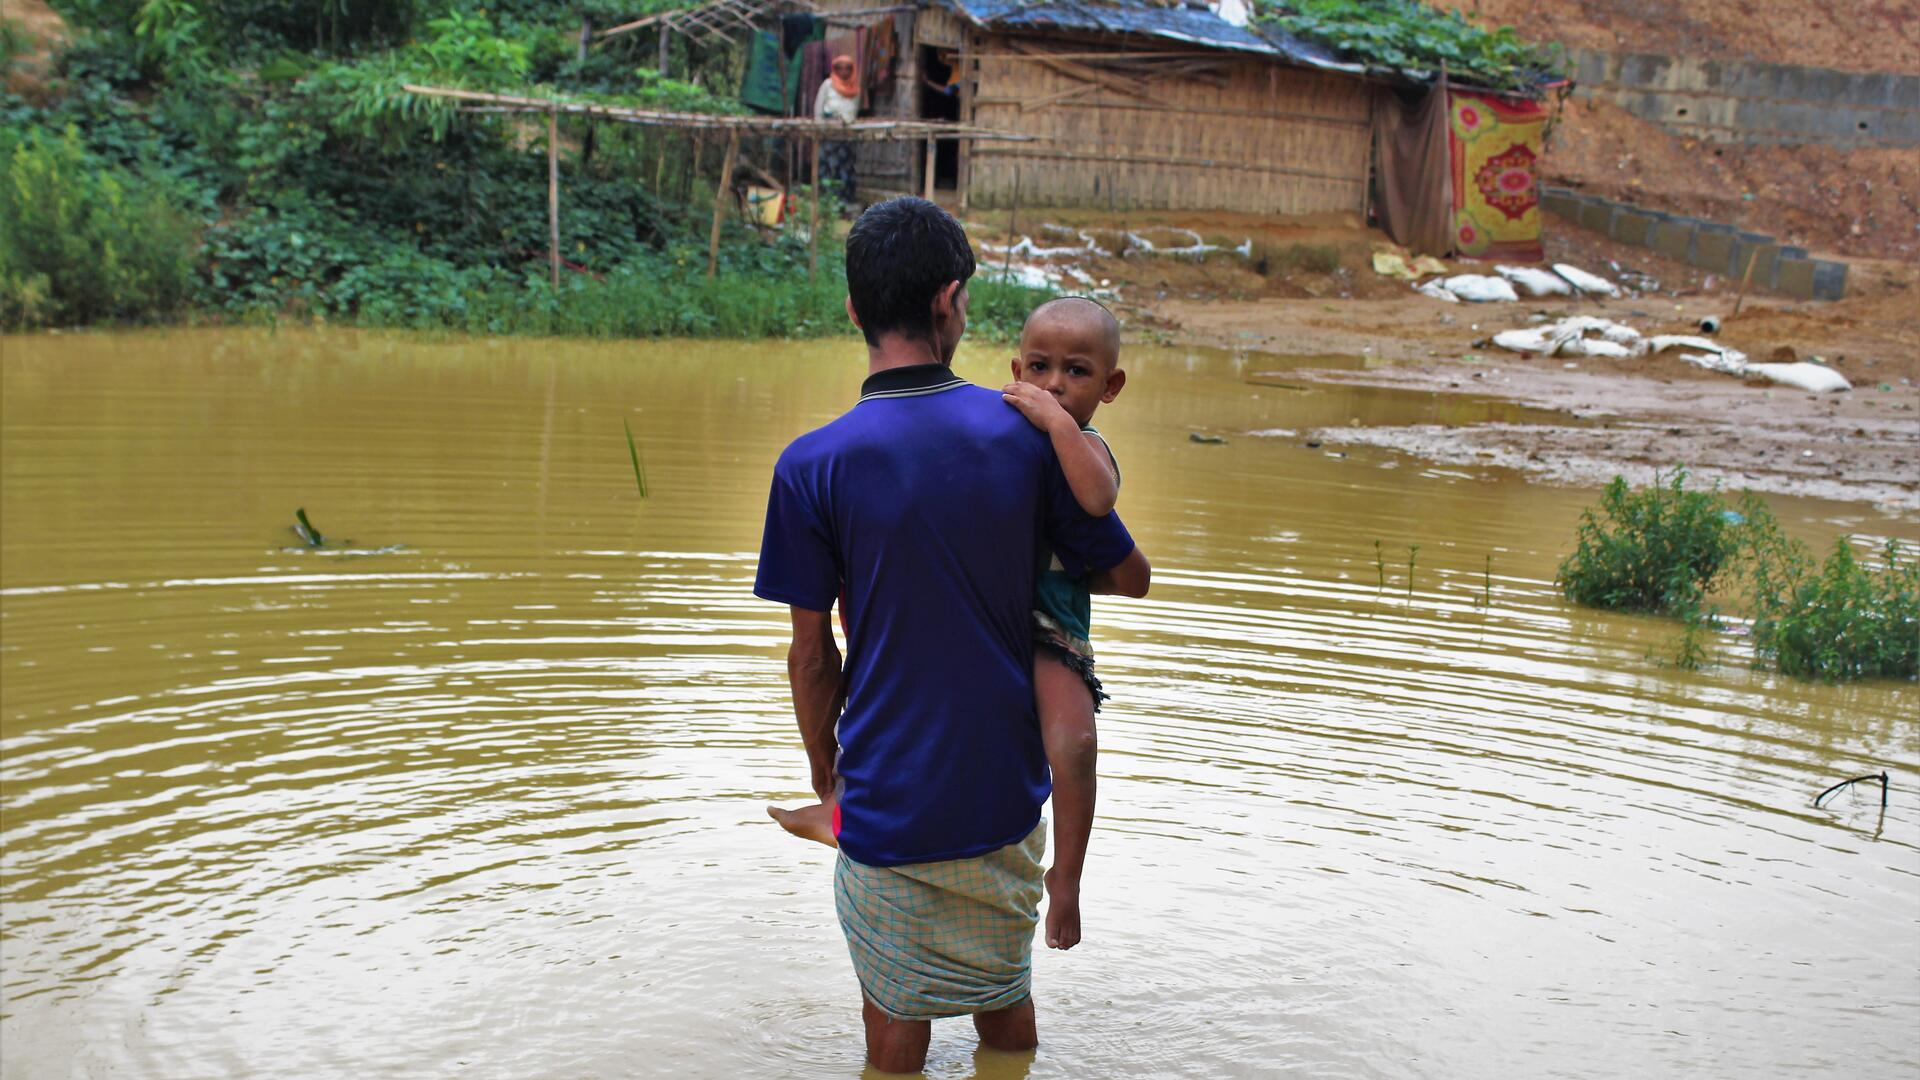 A Rohingya refugee man from Myanmar carries his two-year-old son through nearly knee-deep flood waters in a refugee camp in Bangladesh.